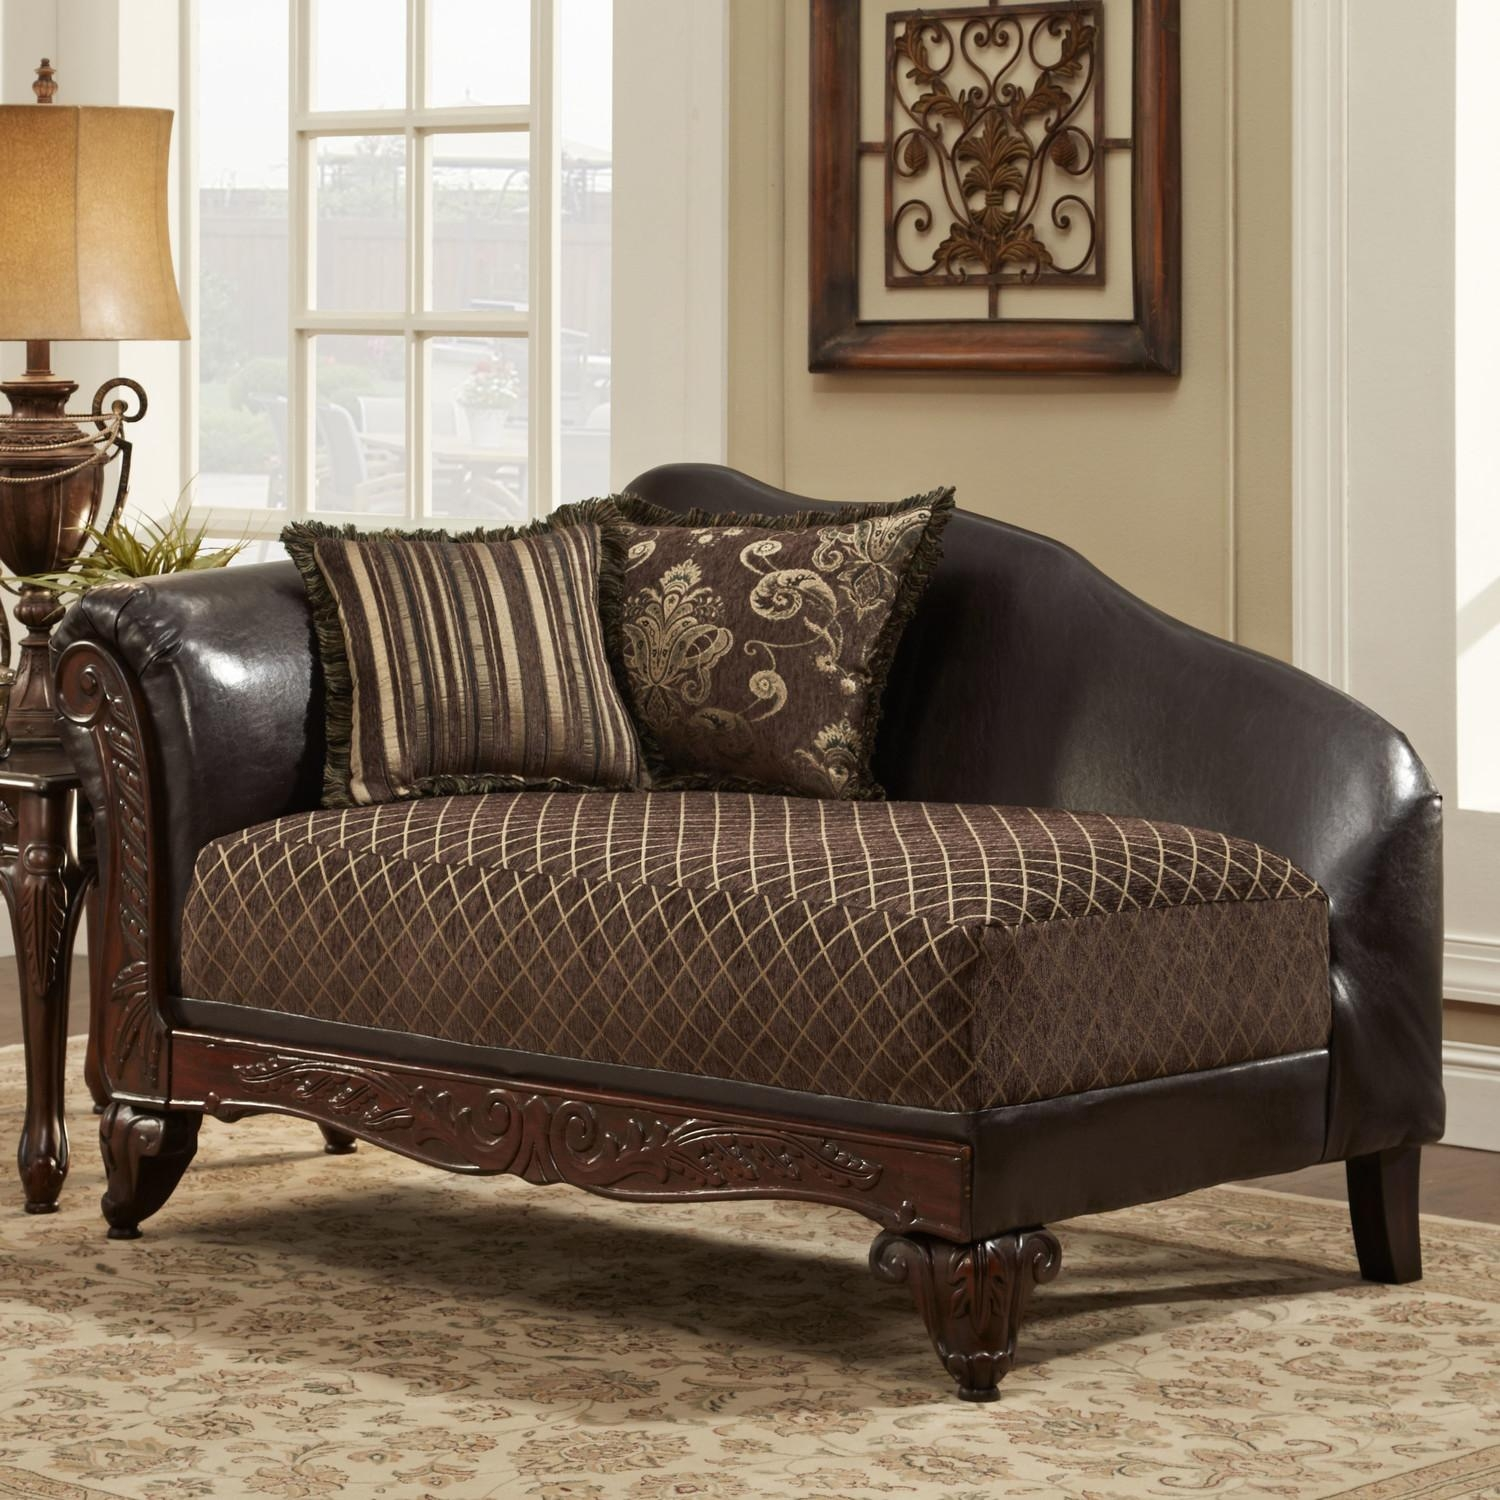 Furniture: Leather Sofa Chaise | Leather Chaise | Leather Chaise In Sofa Lounge Chairs (Image 12 of 20)